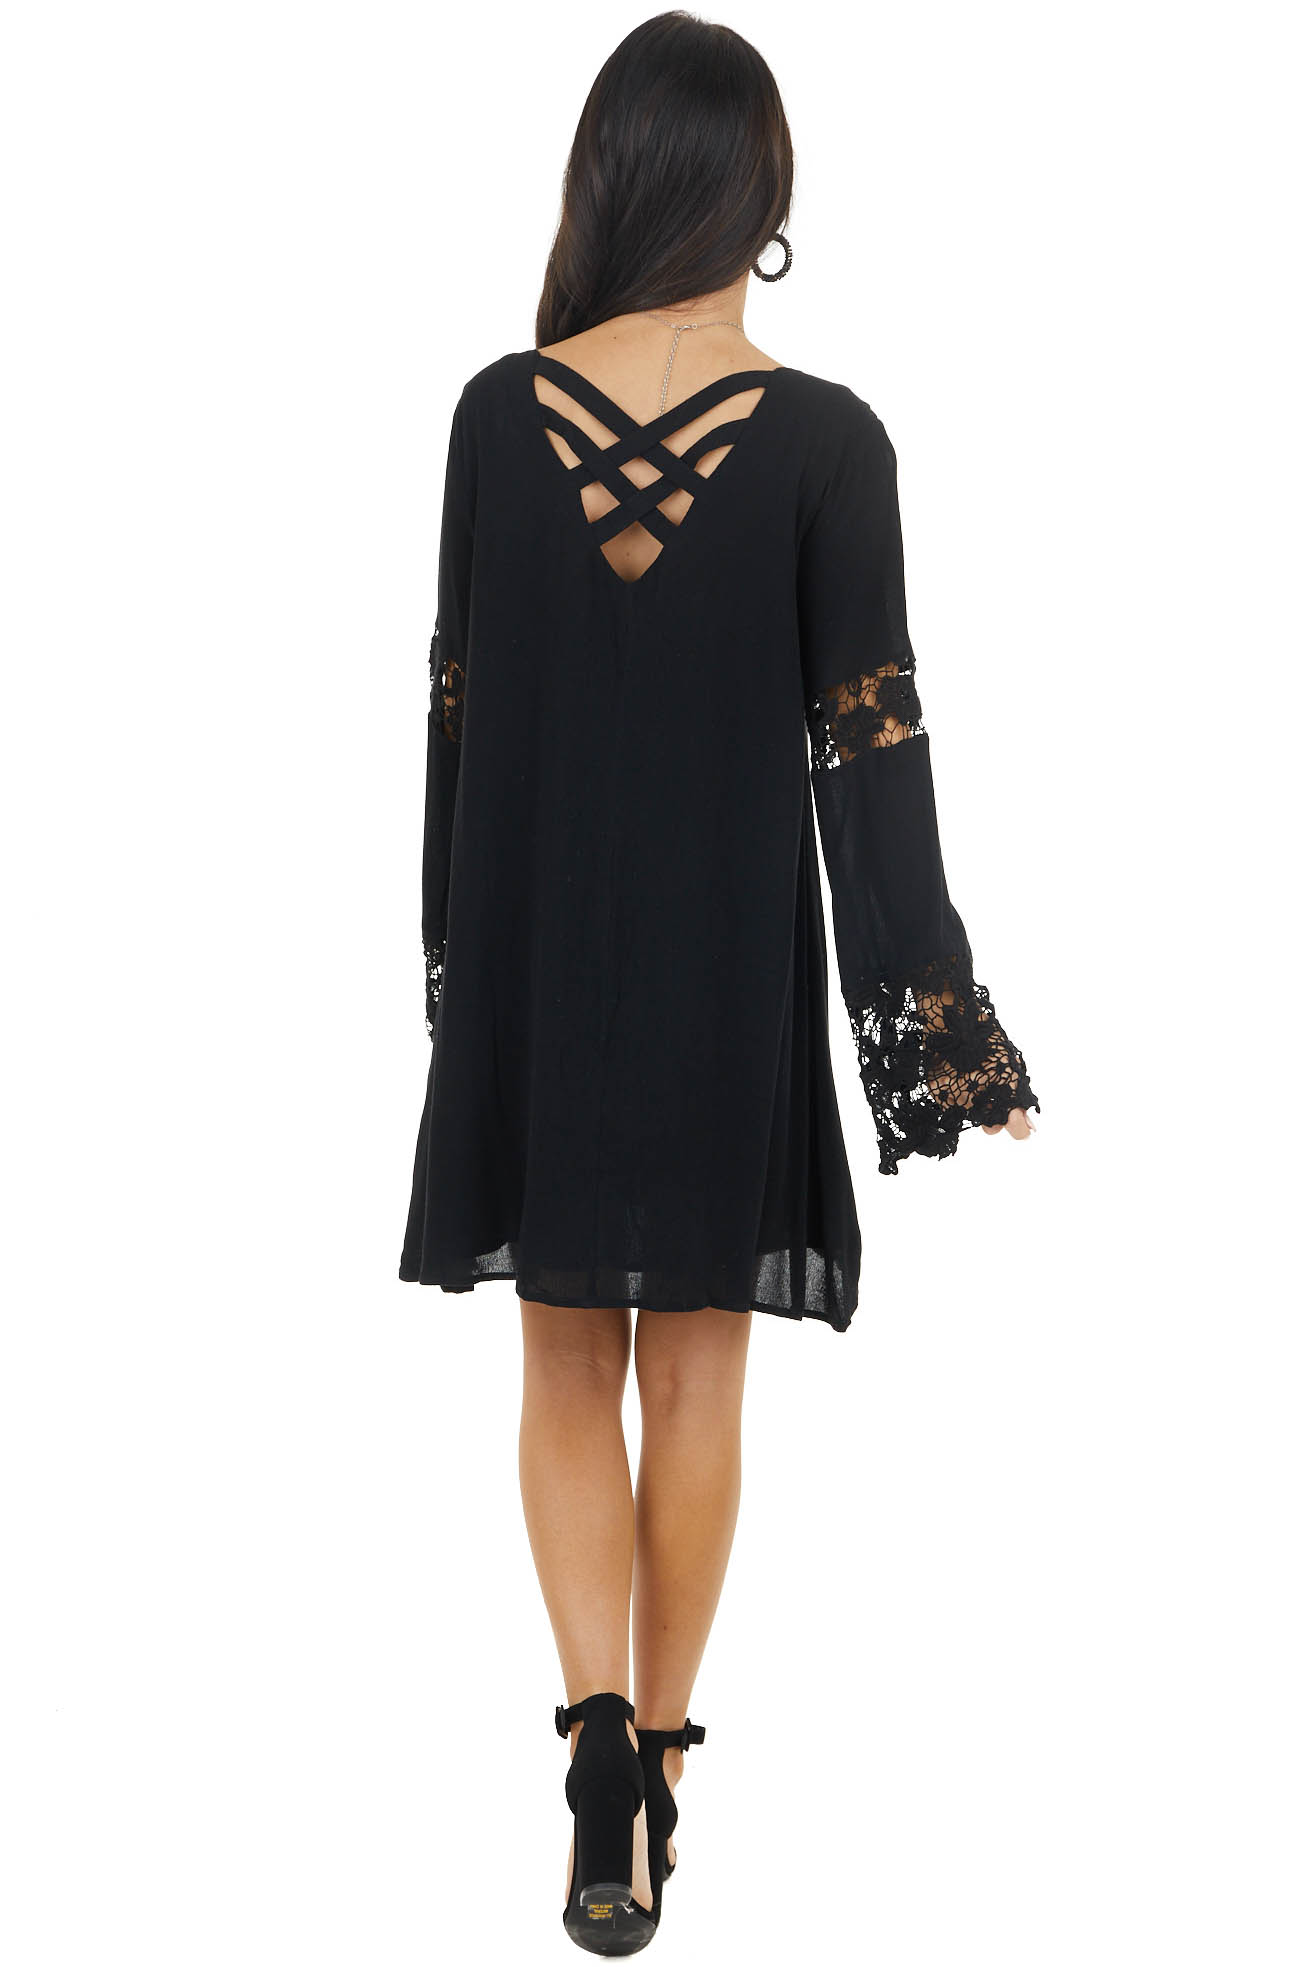 Black Short Shift Dress with Long Crochet Lace Bell Sleeves